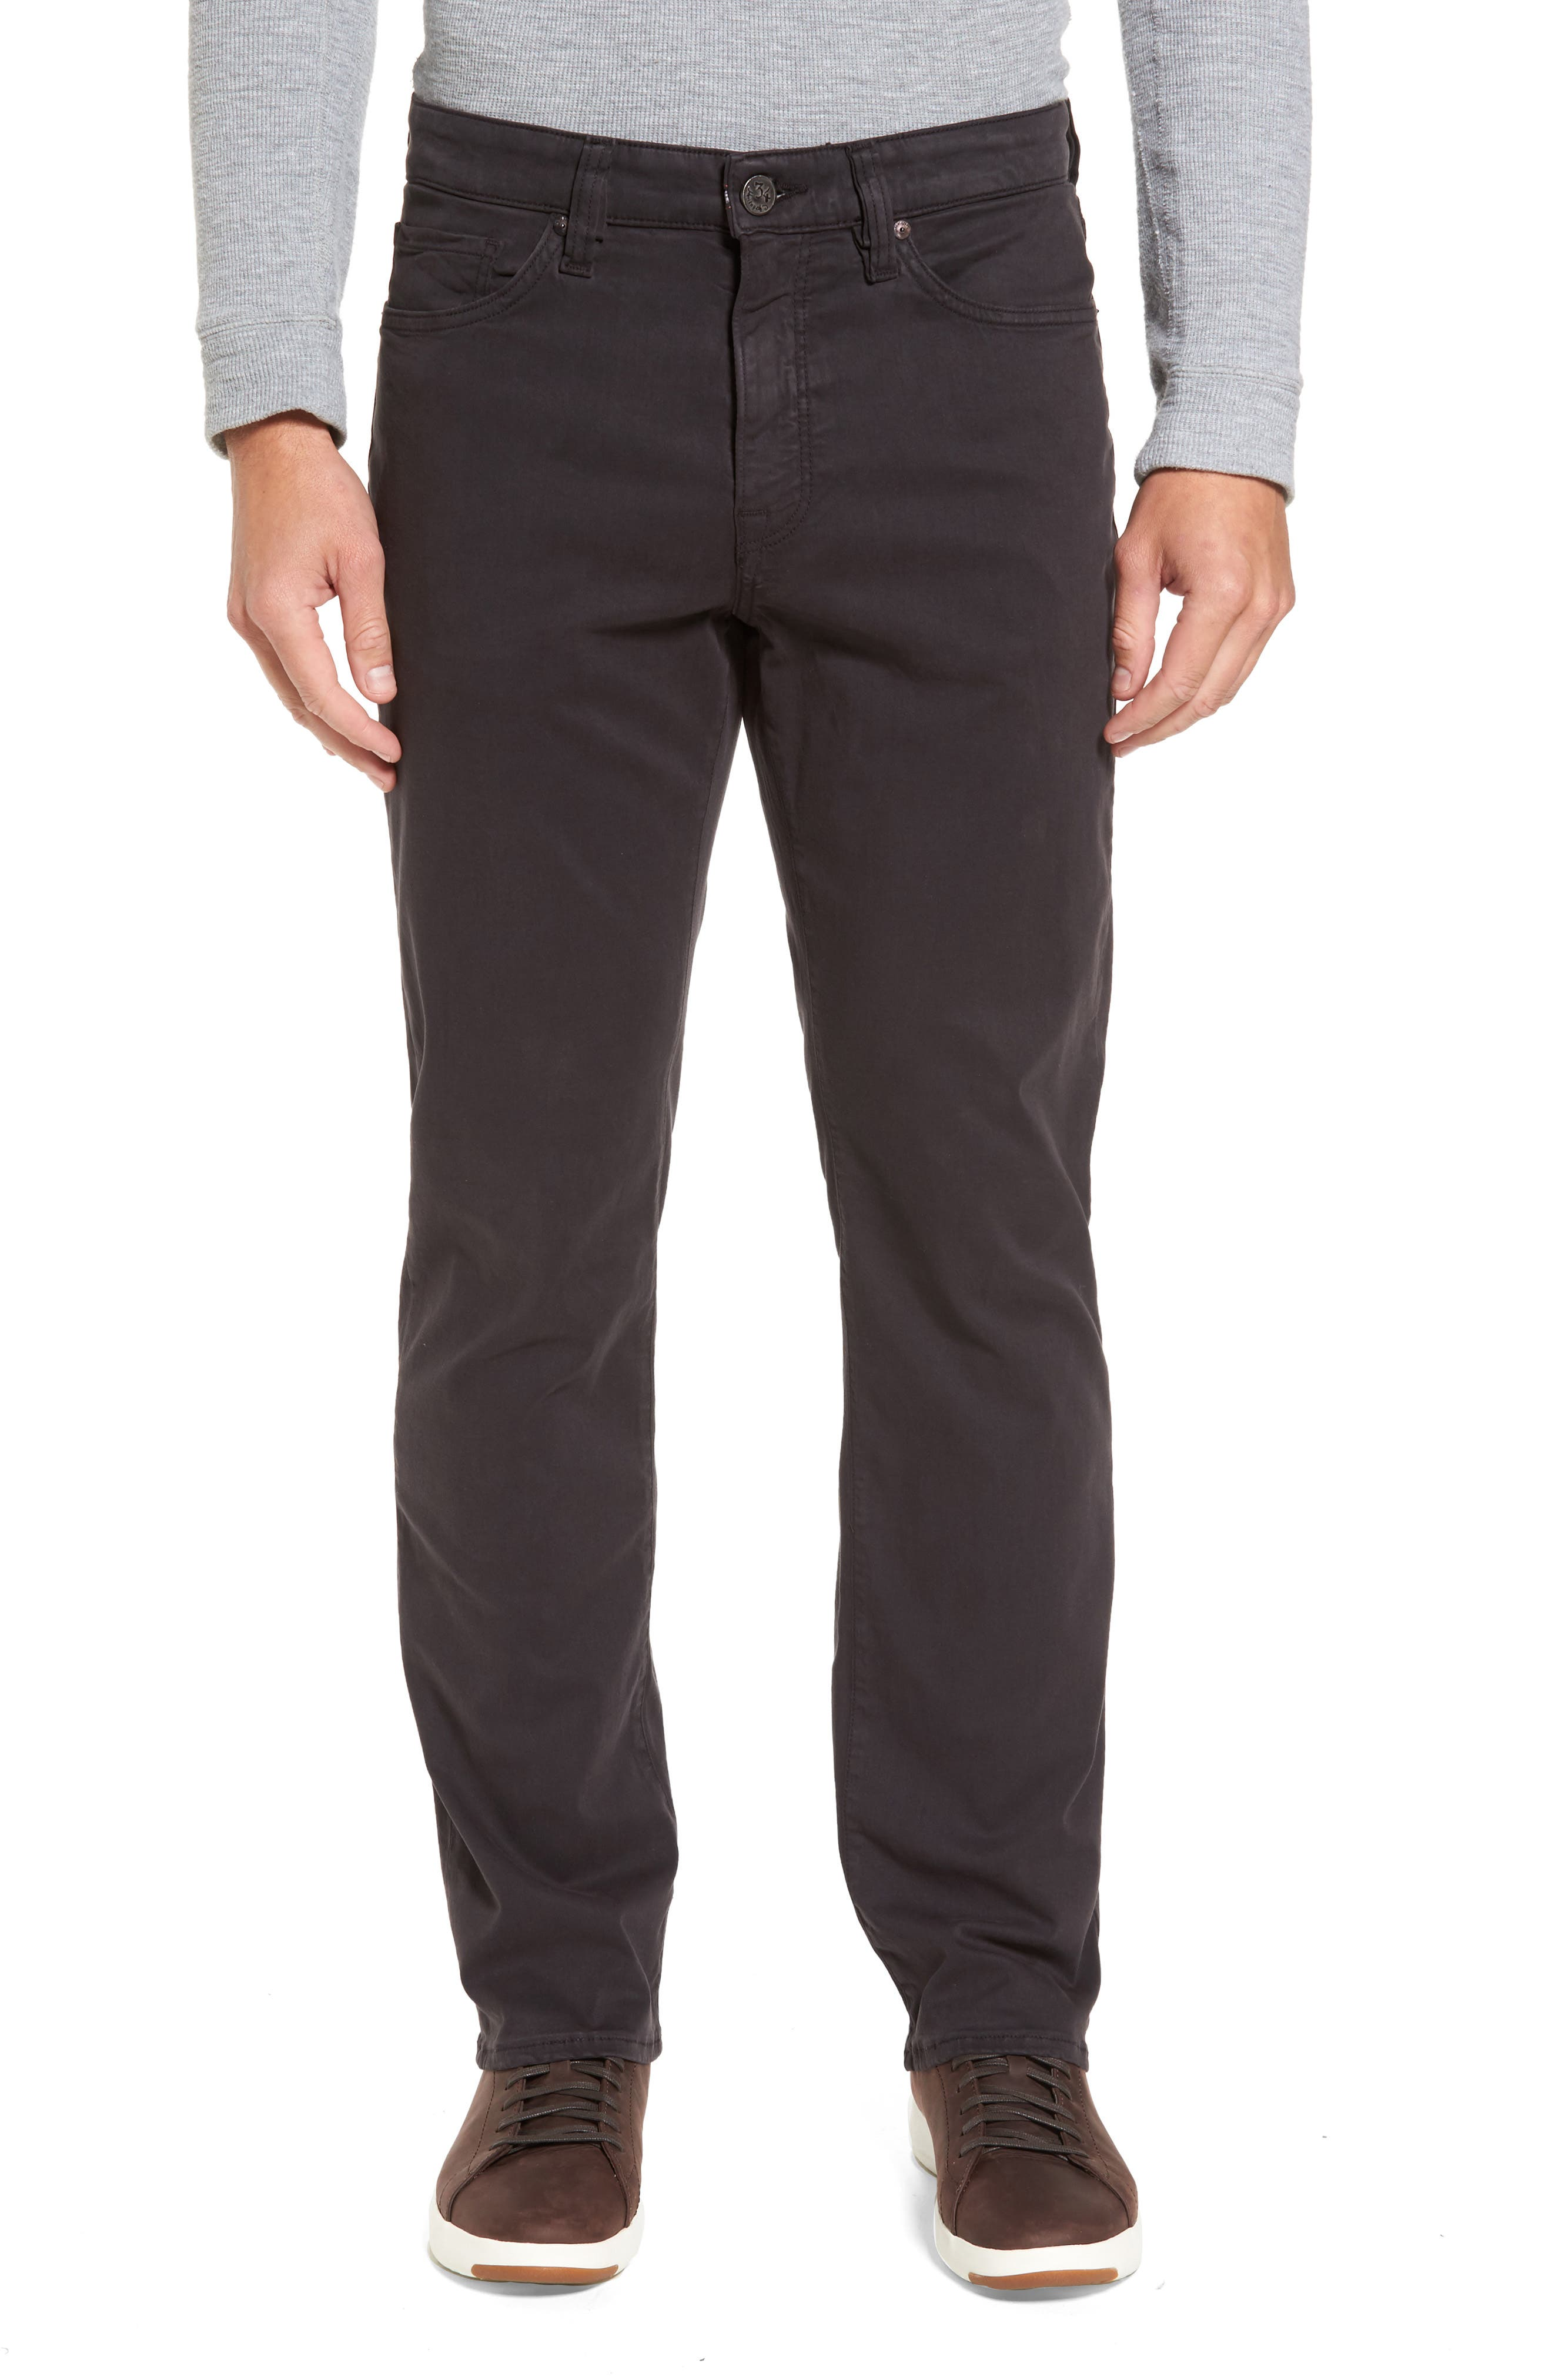 Main Image - 34 Heritage Charisma Relaxed Fit Jeans (Blue-Grey Twill)